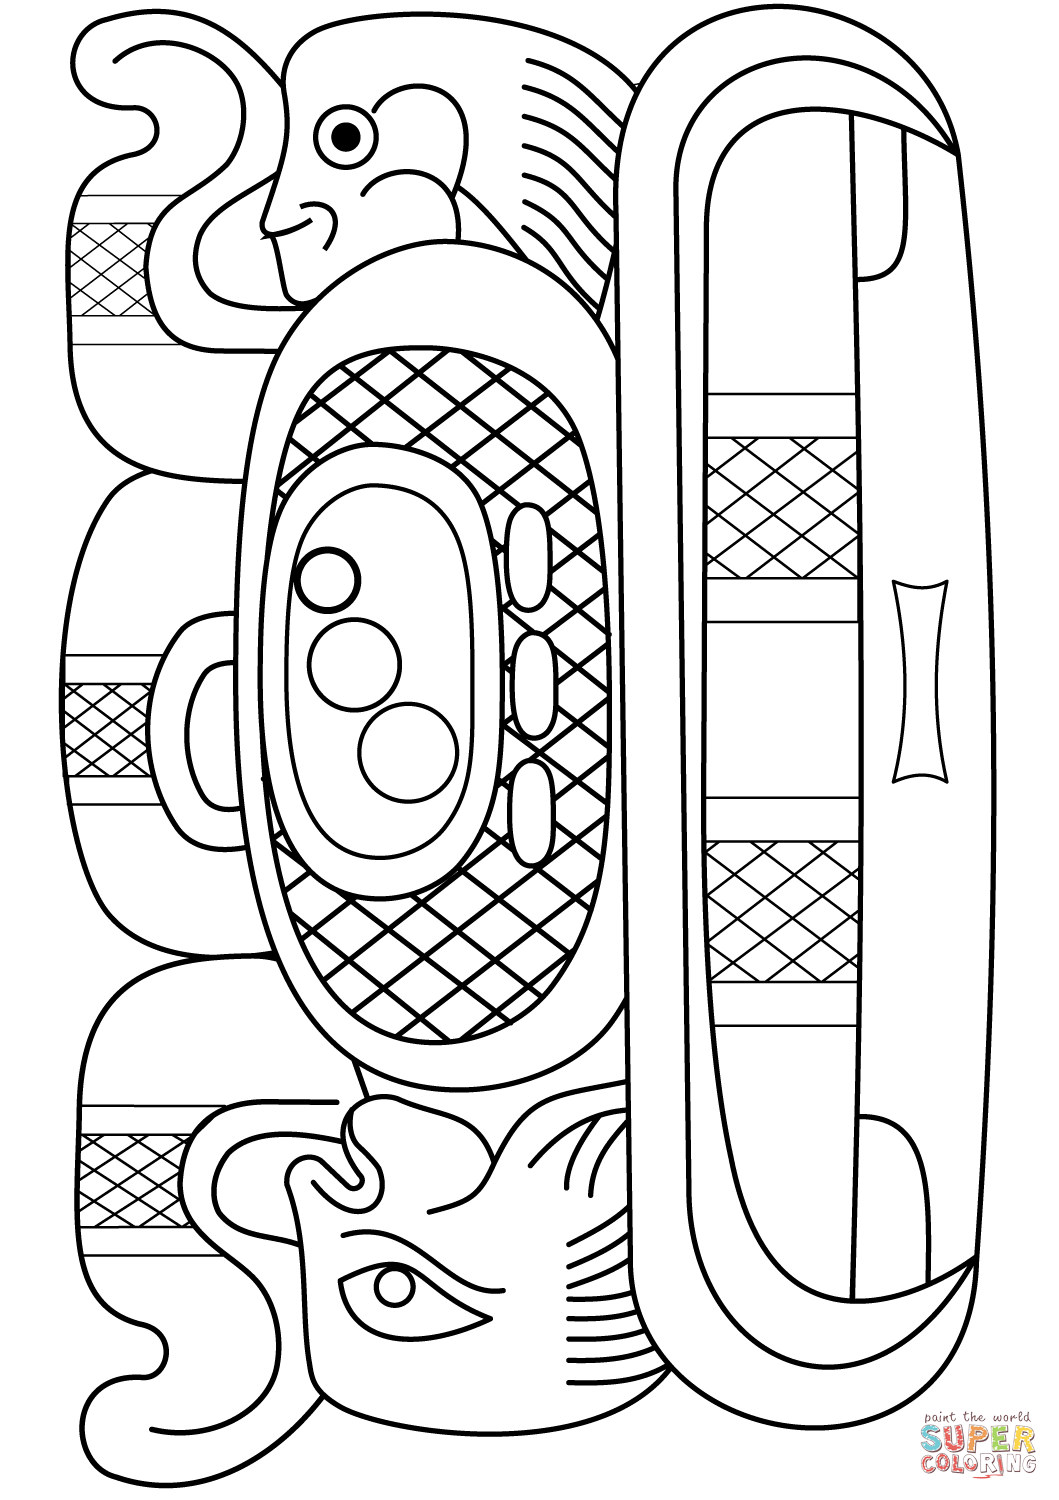 Mayan Calendar Coloring Pages Printable Coloring Pages